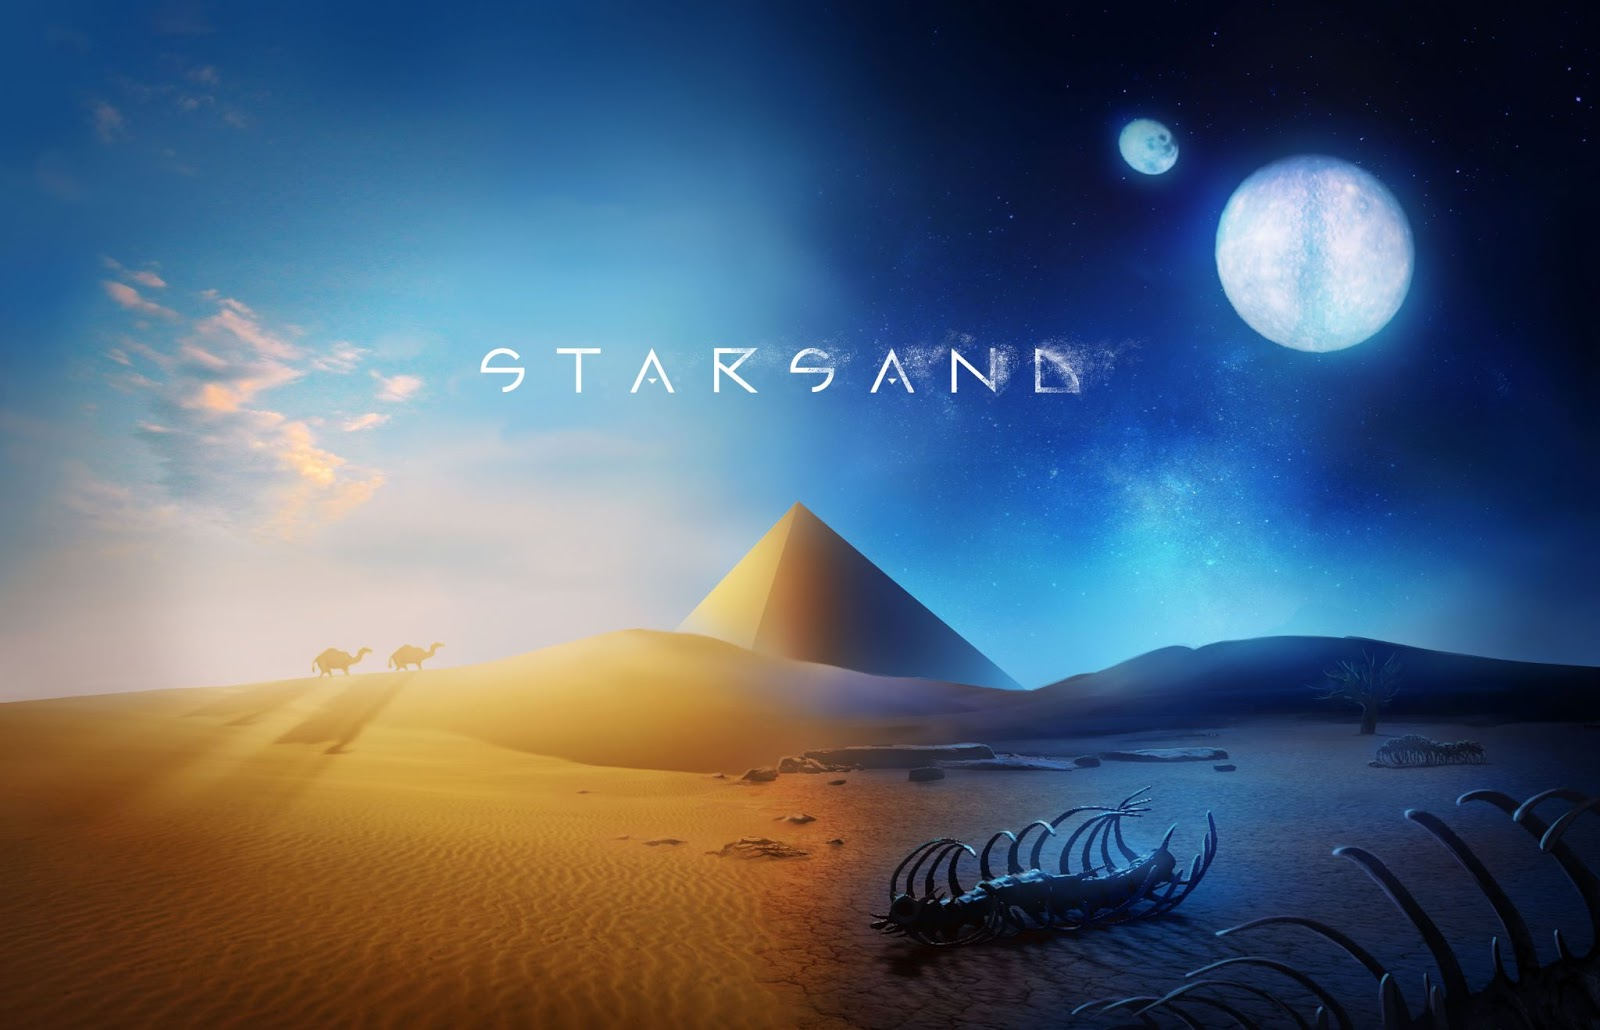 Starsand emerges from the desert - Adapt and escape this survival sandbox adventure